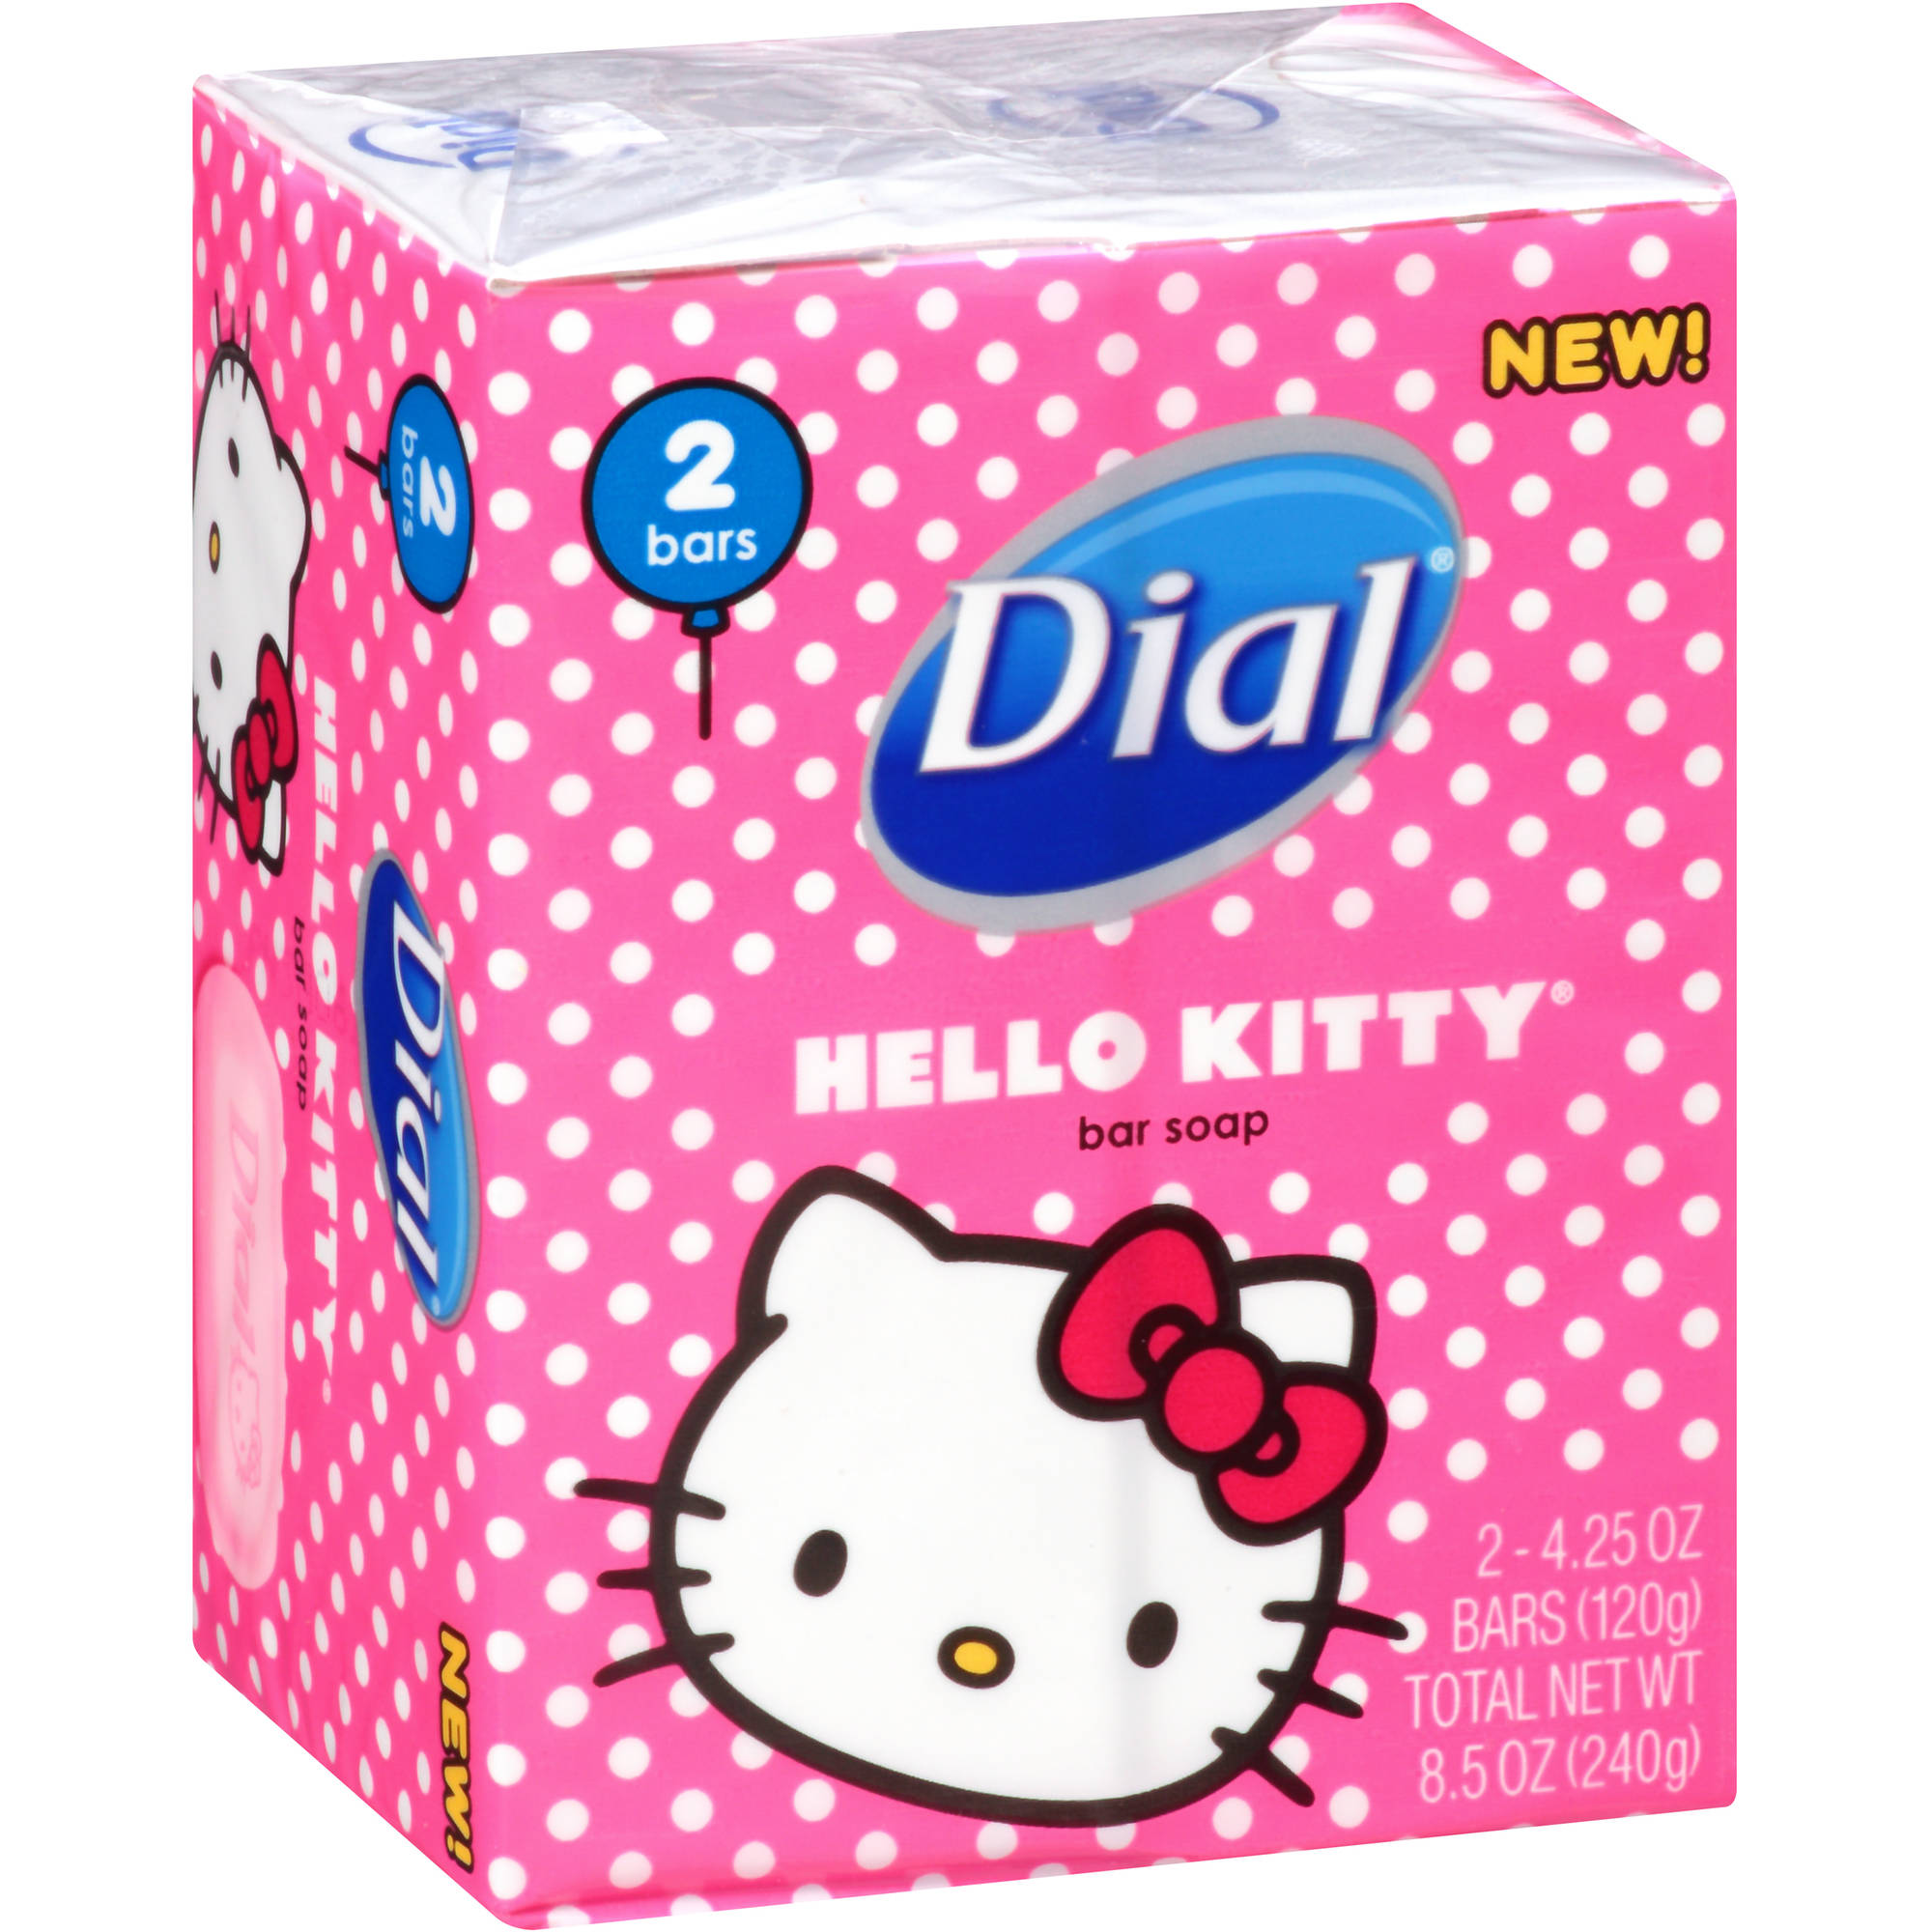 Dial Hello Kitty Soap, 4.25 oz, 2ct